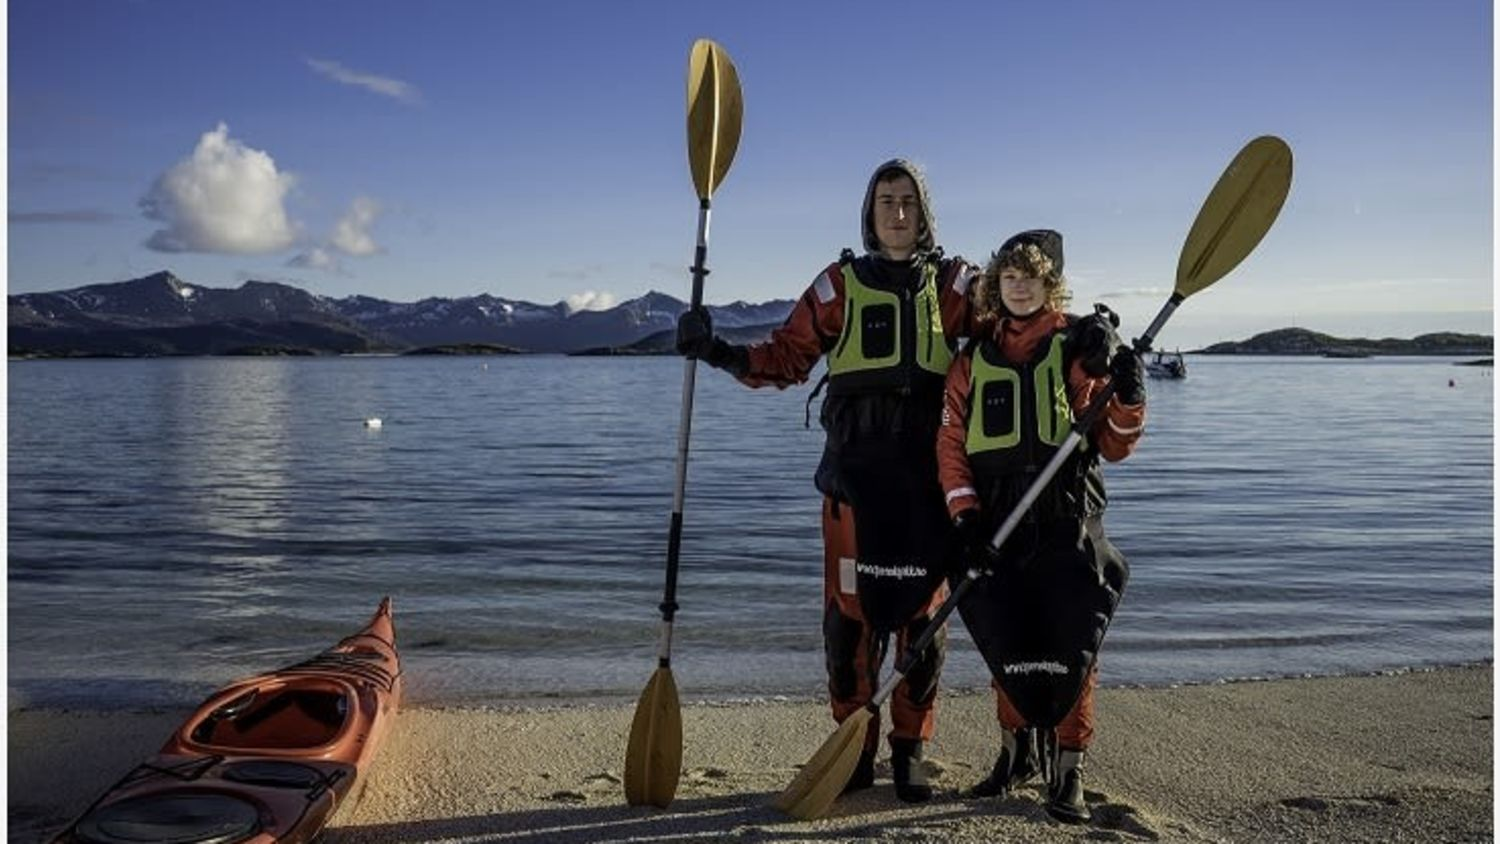 Happy people on a beach after kayaking. Photo: Victor de Coen